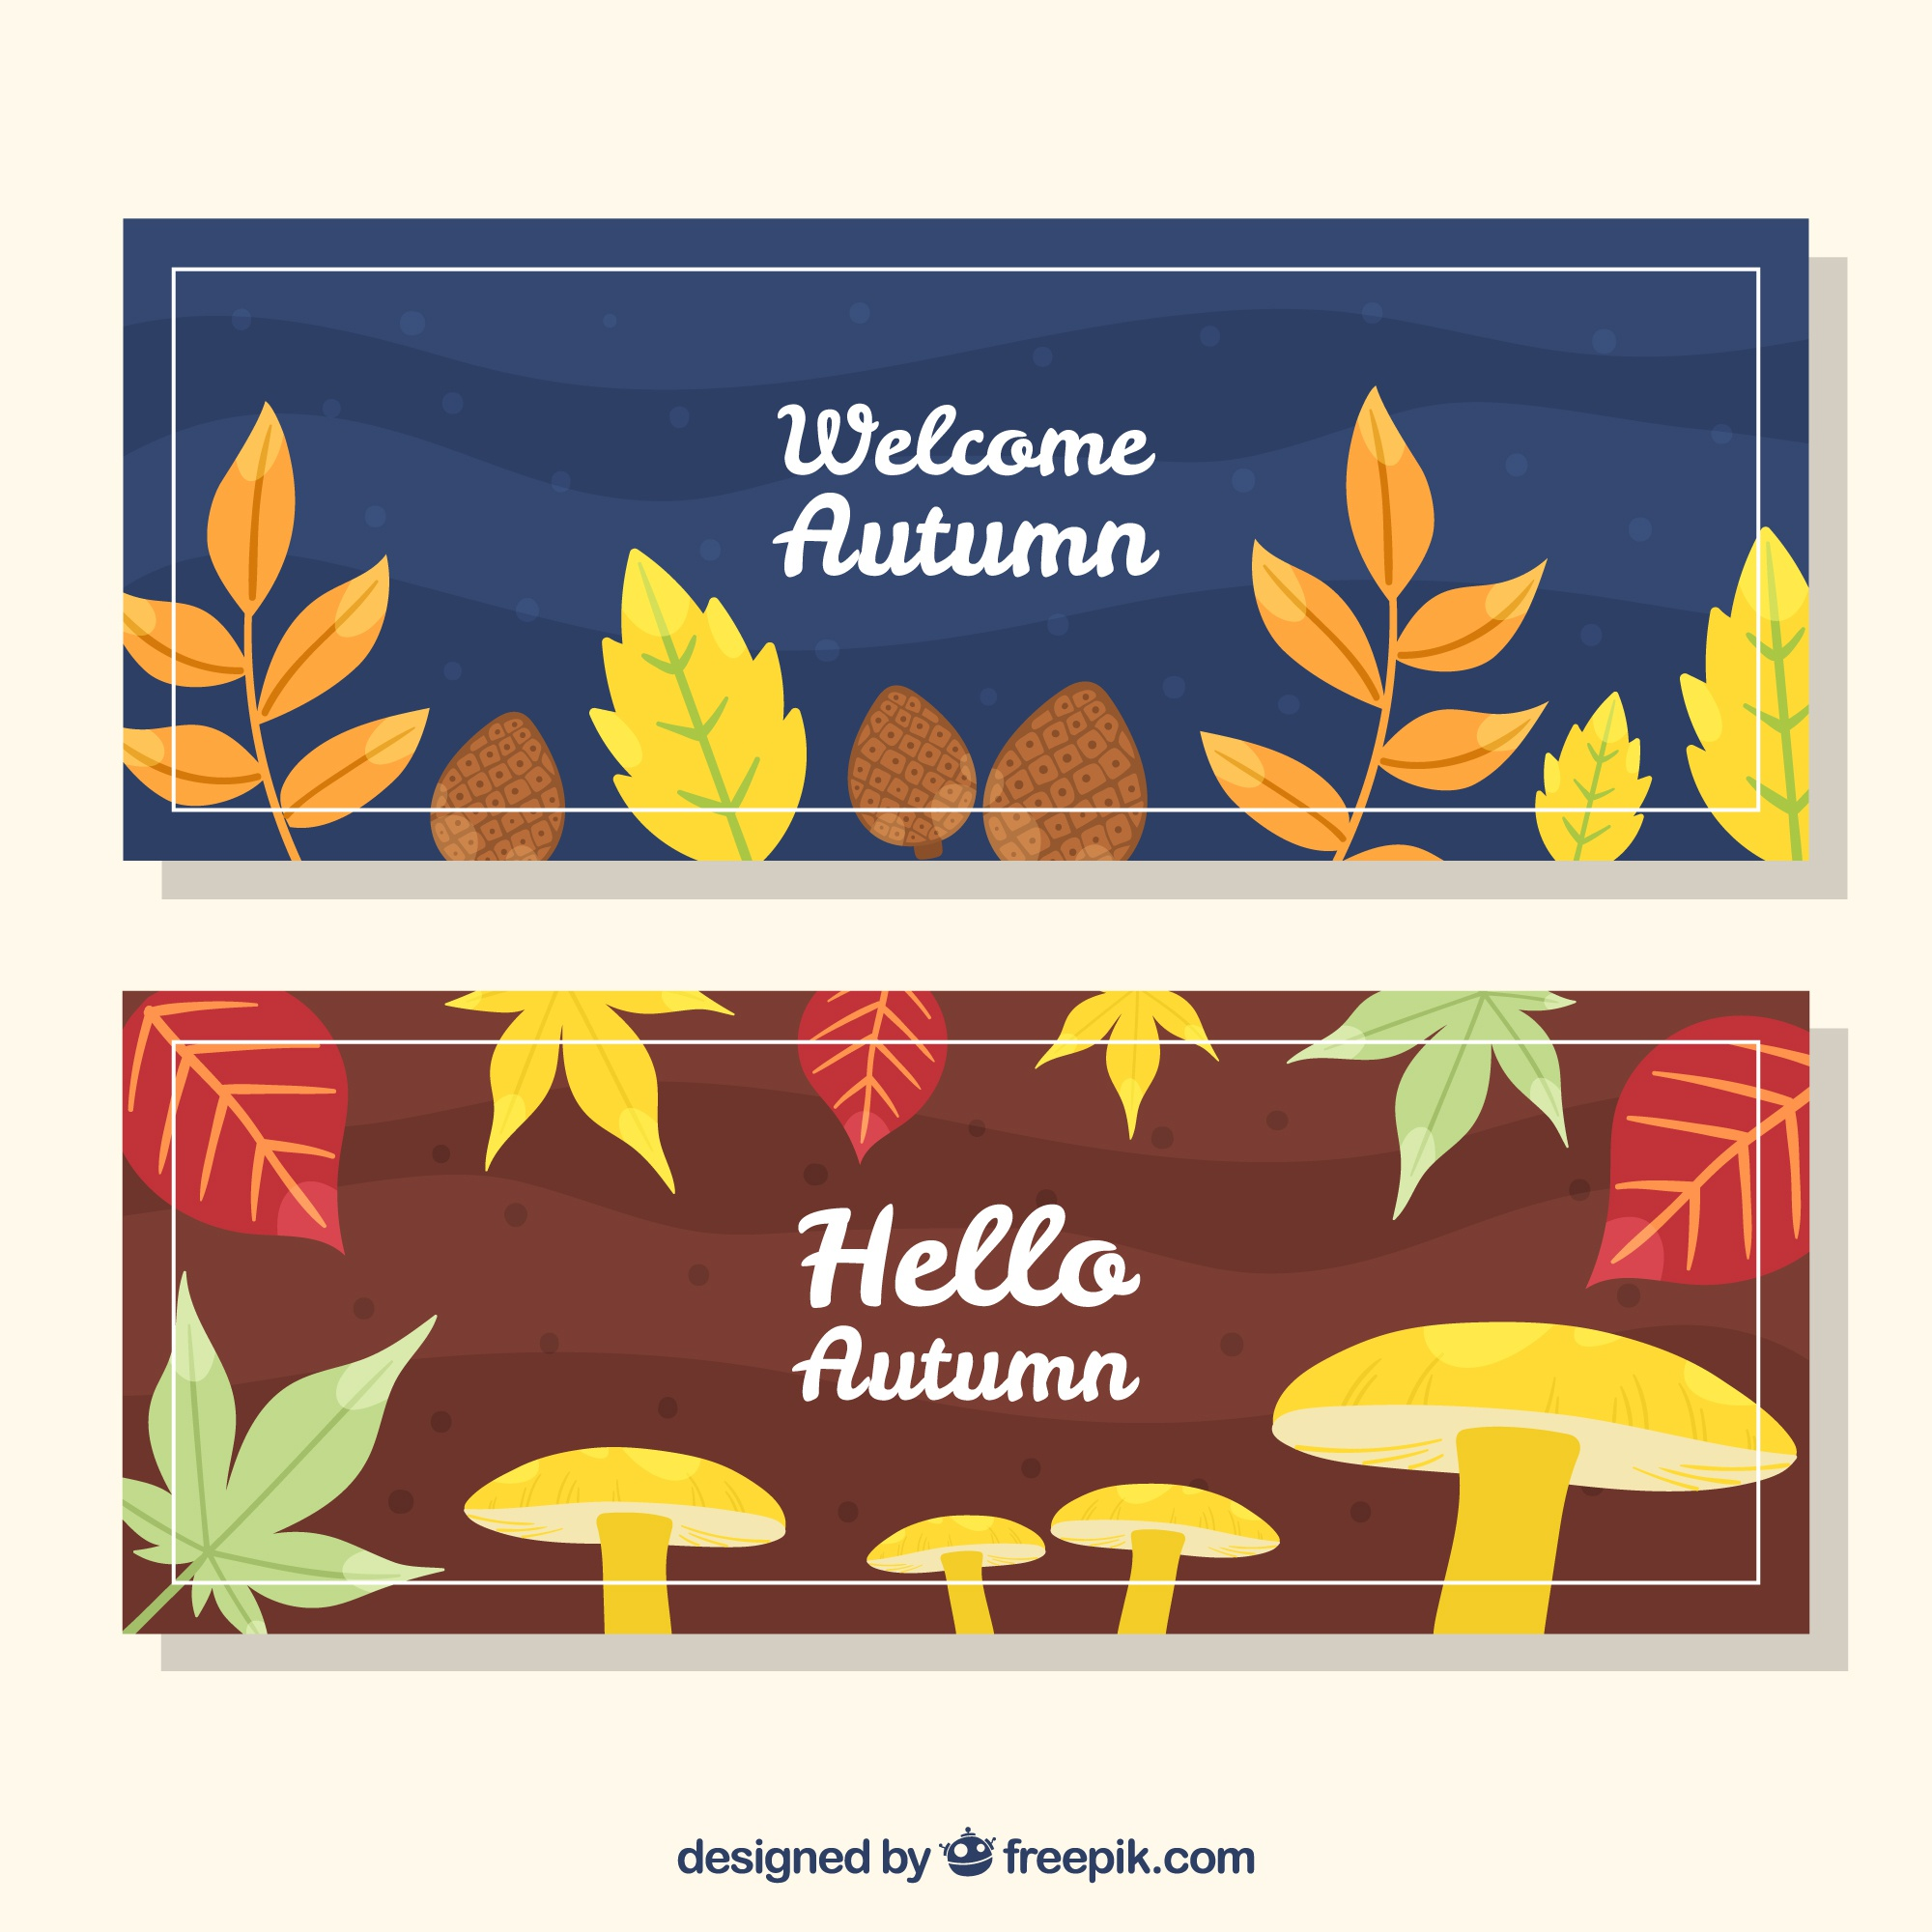 Autumn banners with colorful leaves and mushrooms